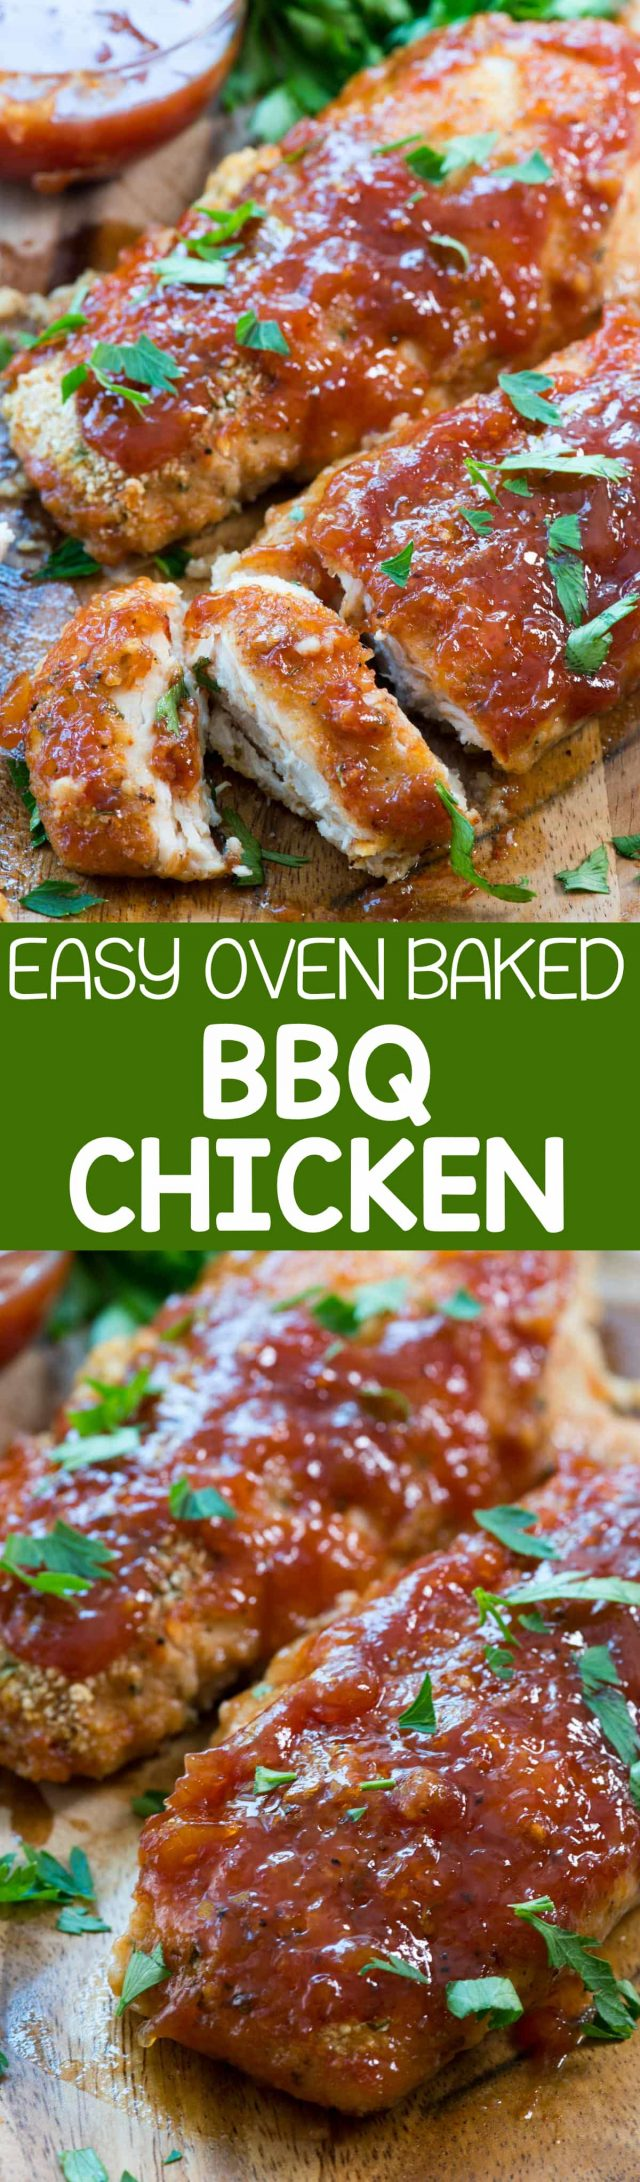 Easy Oven Baked BBQ Chicken - Crazy for Crust